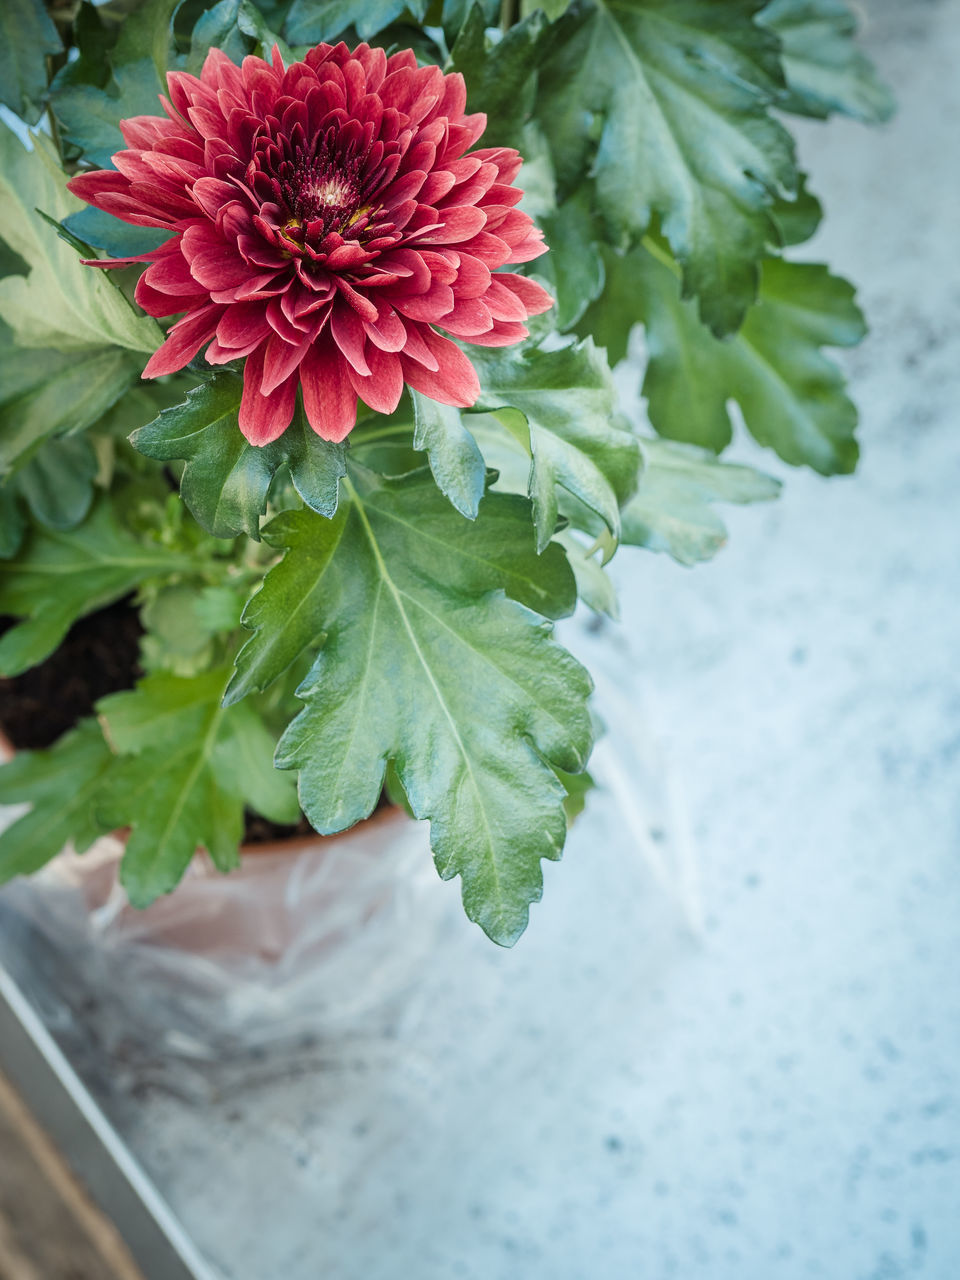 HIGH ANGLE VIEW OF RED FLOWERING PLANT IN WATER